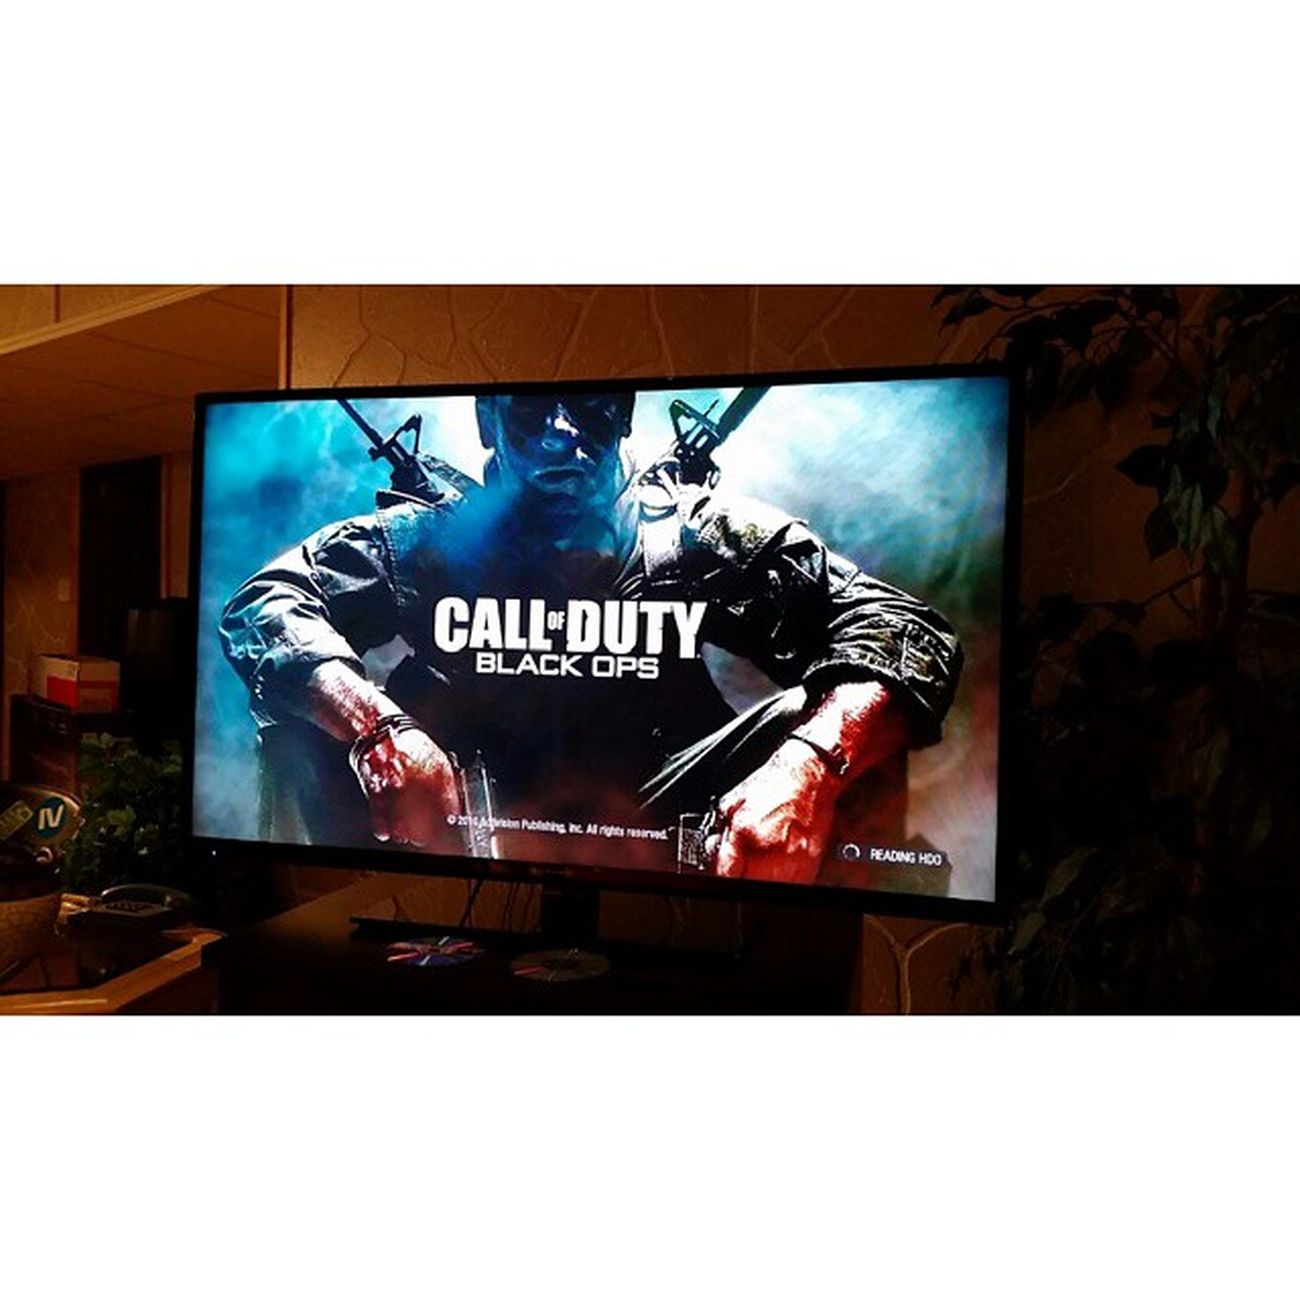 "cod on our new 50"" 👌😍 COD 50inch Sonice Sobig loveit"